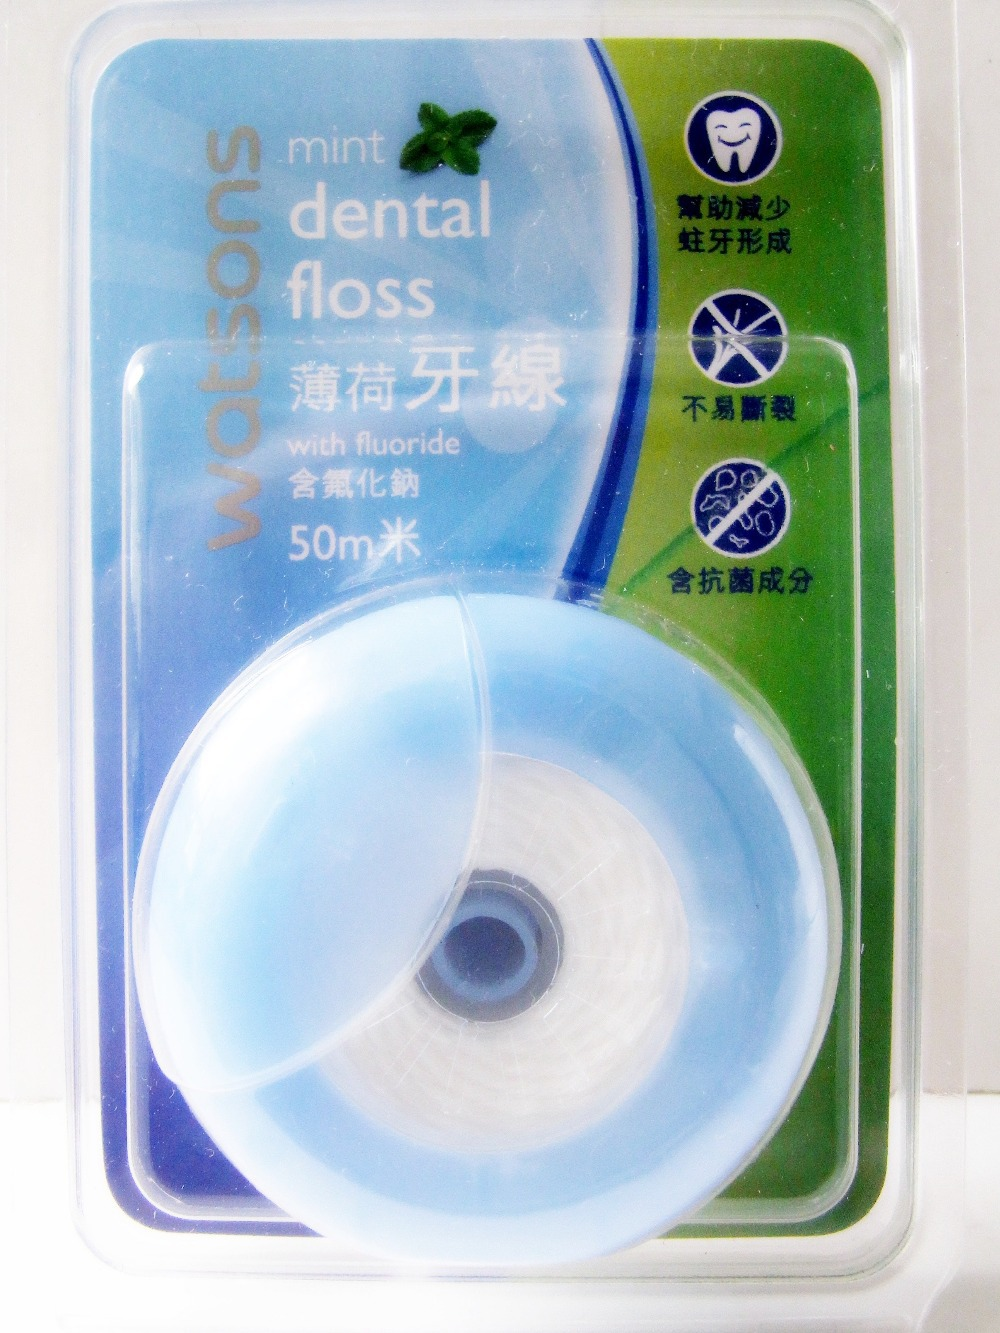 Watsons Mint Oral Dental Floss 50M (Wax) with Fluoride Anti-bacterial oral hygiene